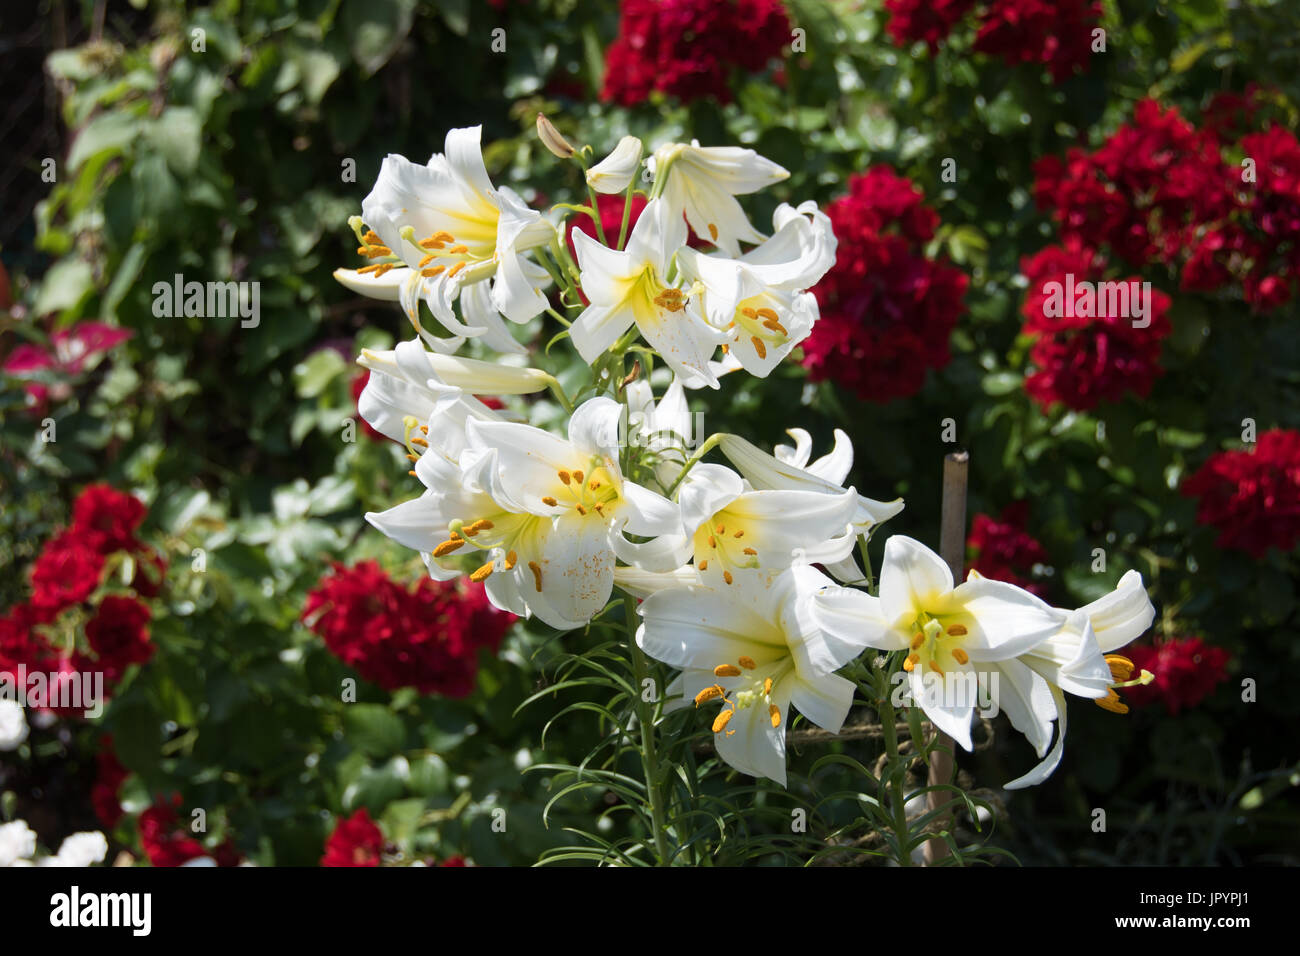 Flower carpet roses stock photos flower carpet roses stock images heavily scented white lily lilium regale and red flower carpet mightylinksfo